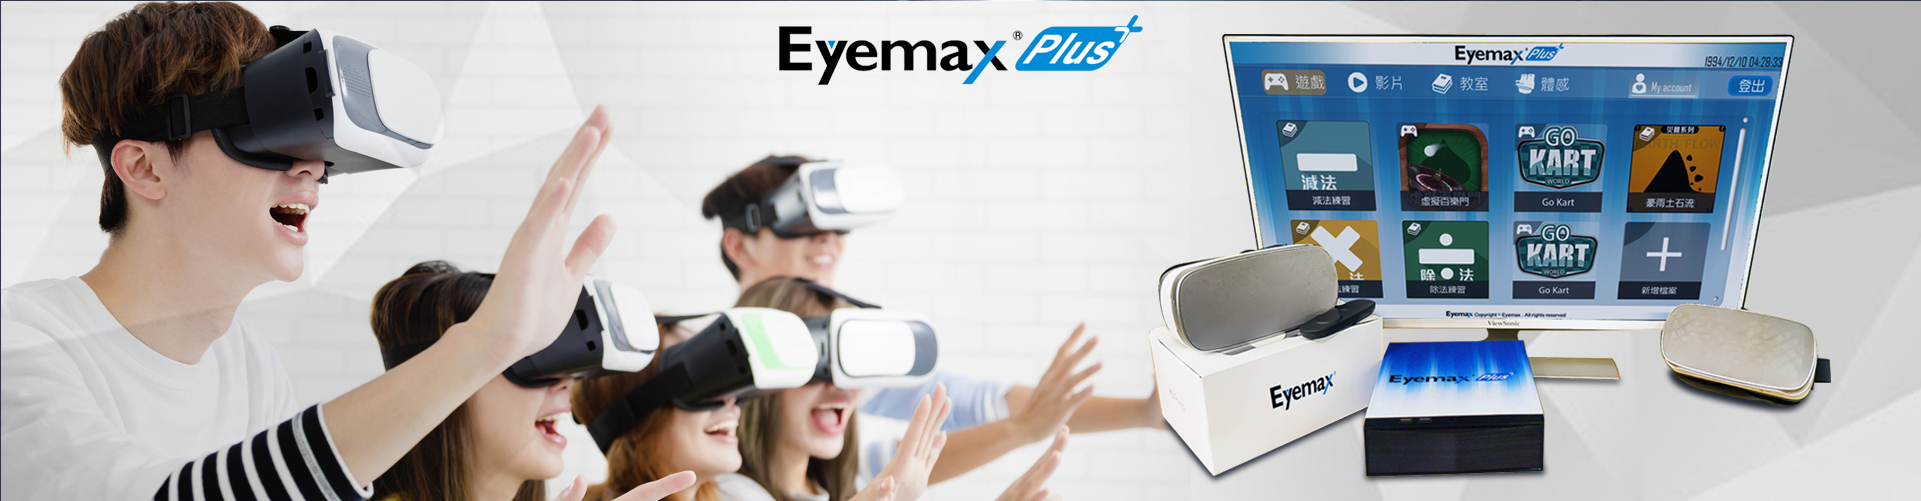 Eyemax announced the upcoming launch of the Eyemax Plus VR broadcast system.